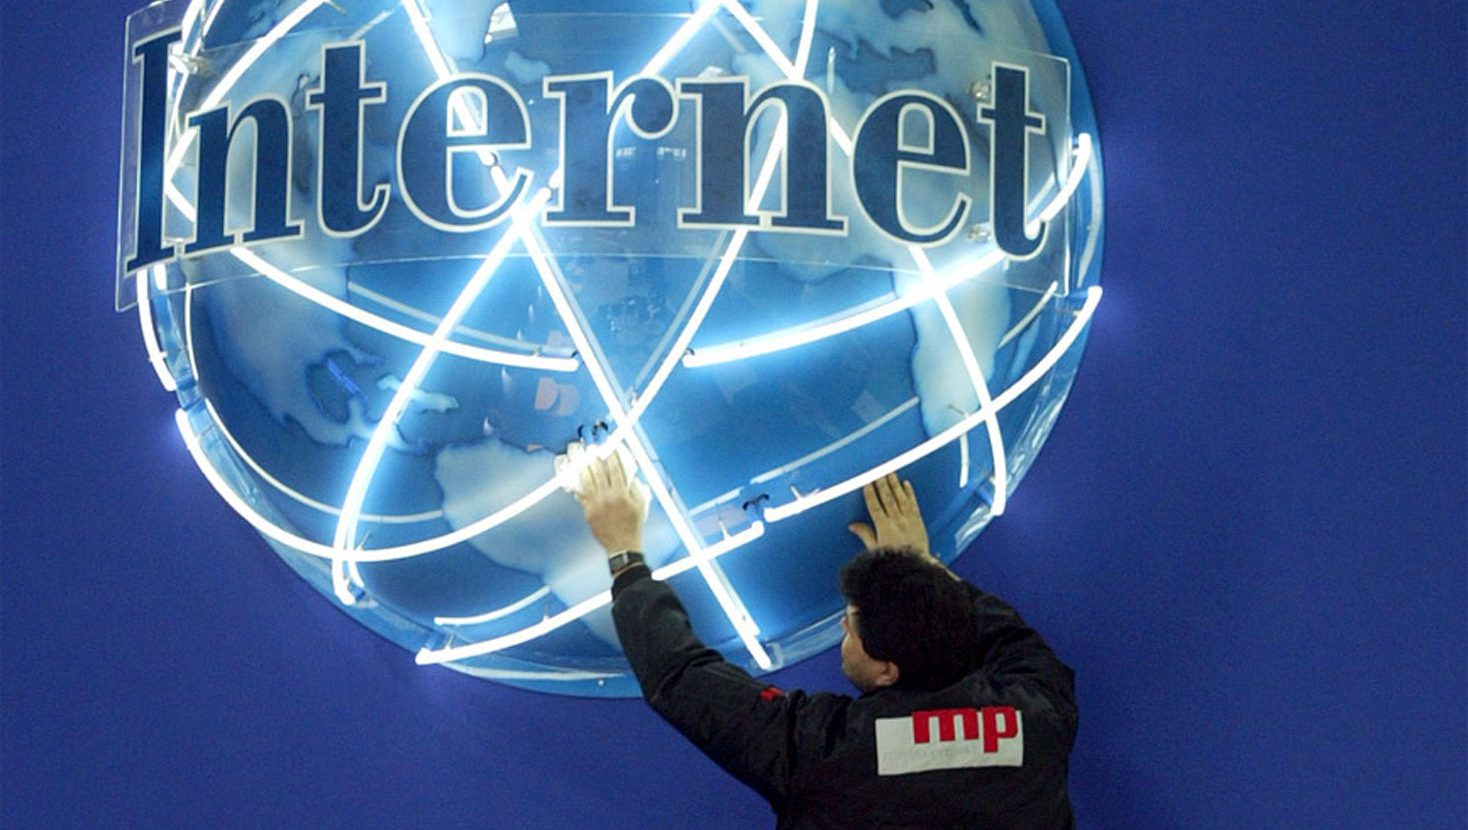 A worker adjusts a globe advertising internet connections in preparation for the world's largest computer fair, CeBIT, in Hanover March 15, 2004. Some 6,400 exhibitors from 64 nations present their latest products at the world's largest computer and information technology fair, CeBIT, which runs from March 18 until March 24, 2004.